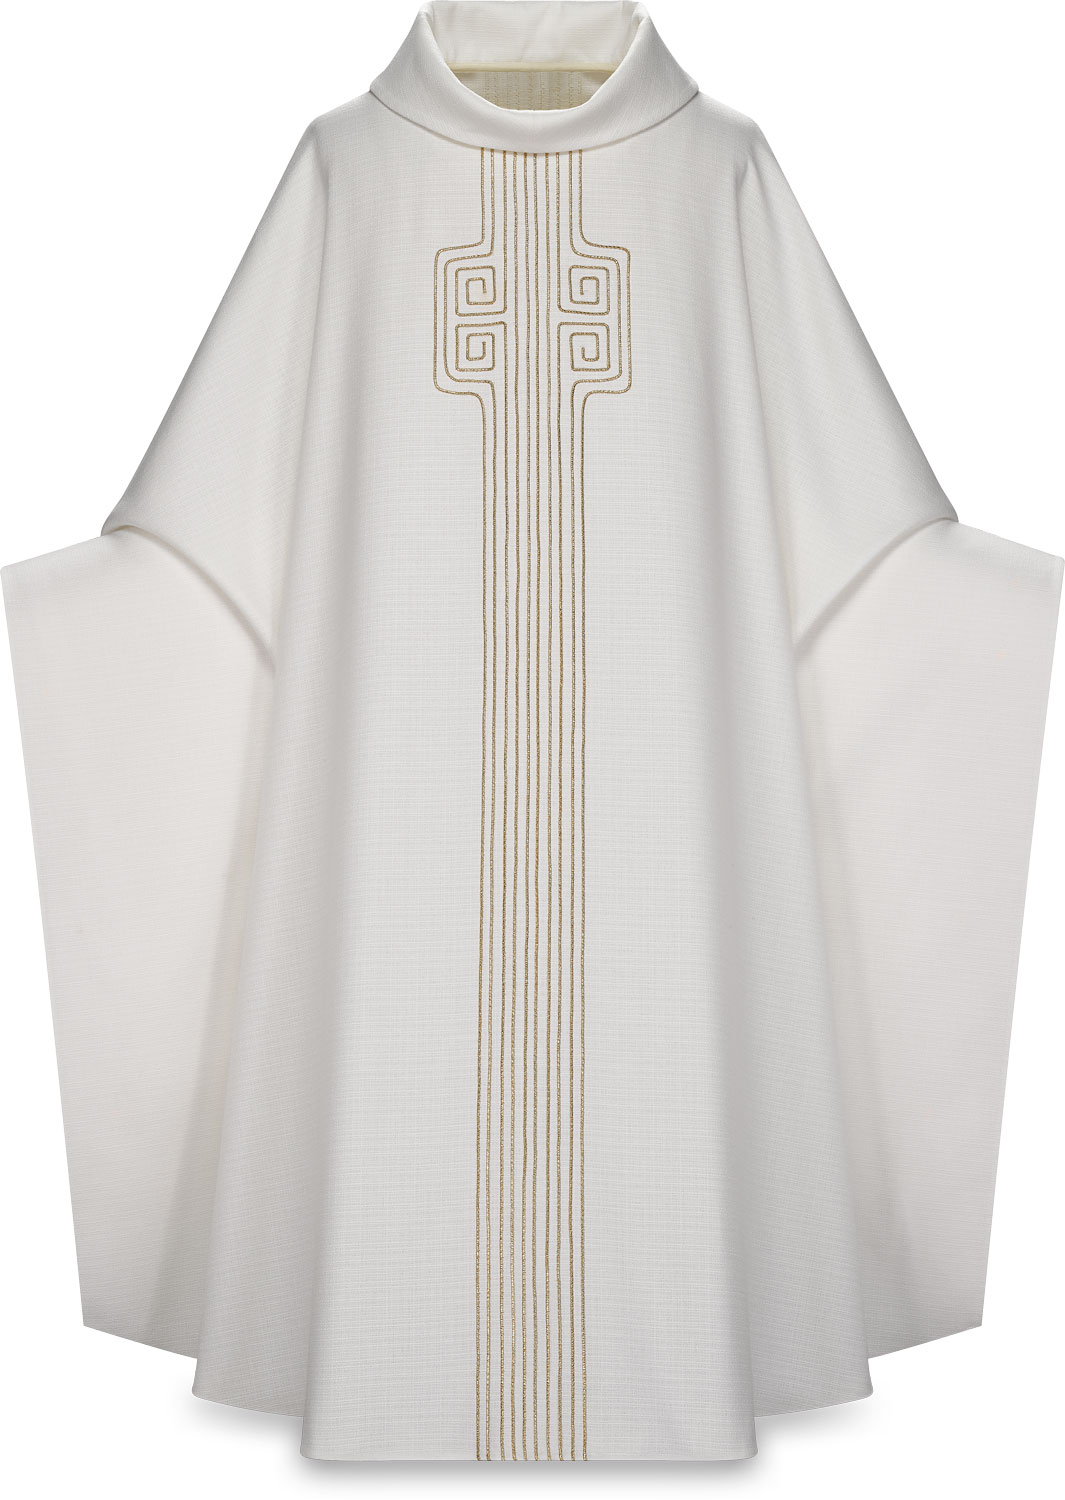 Chasuble | White | 5239 | Slabbinck